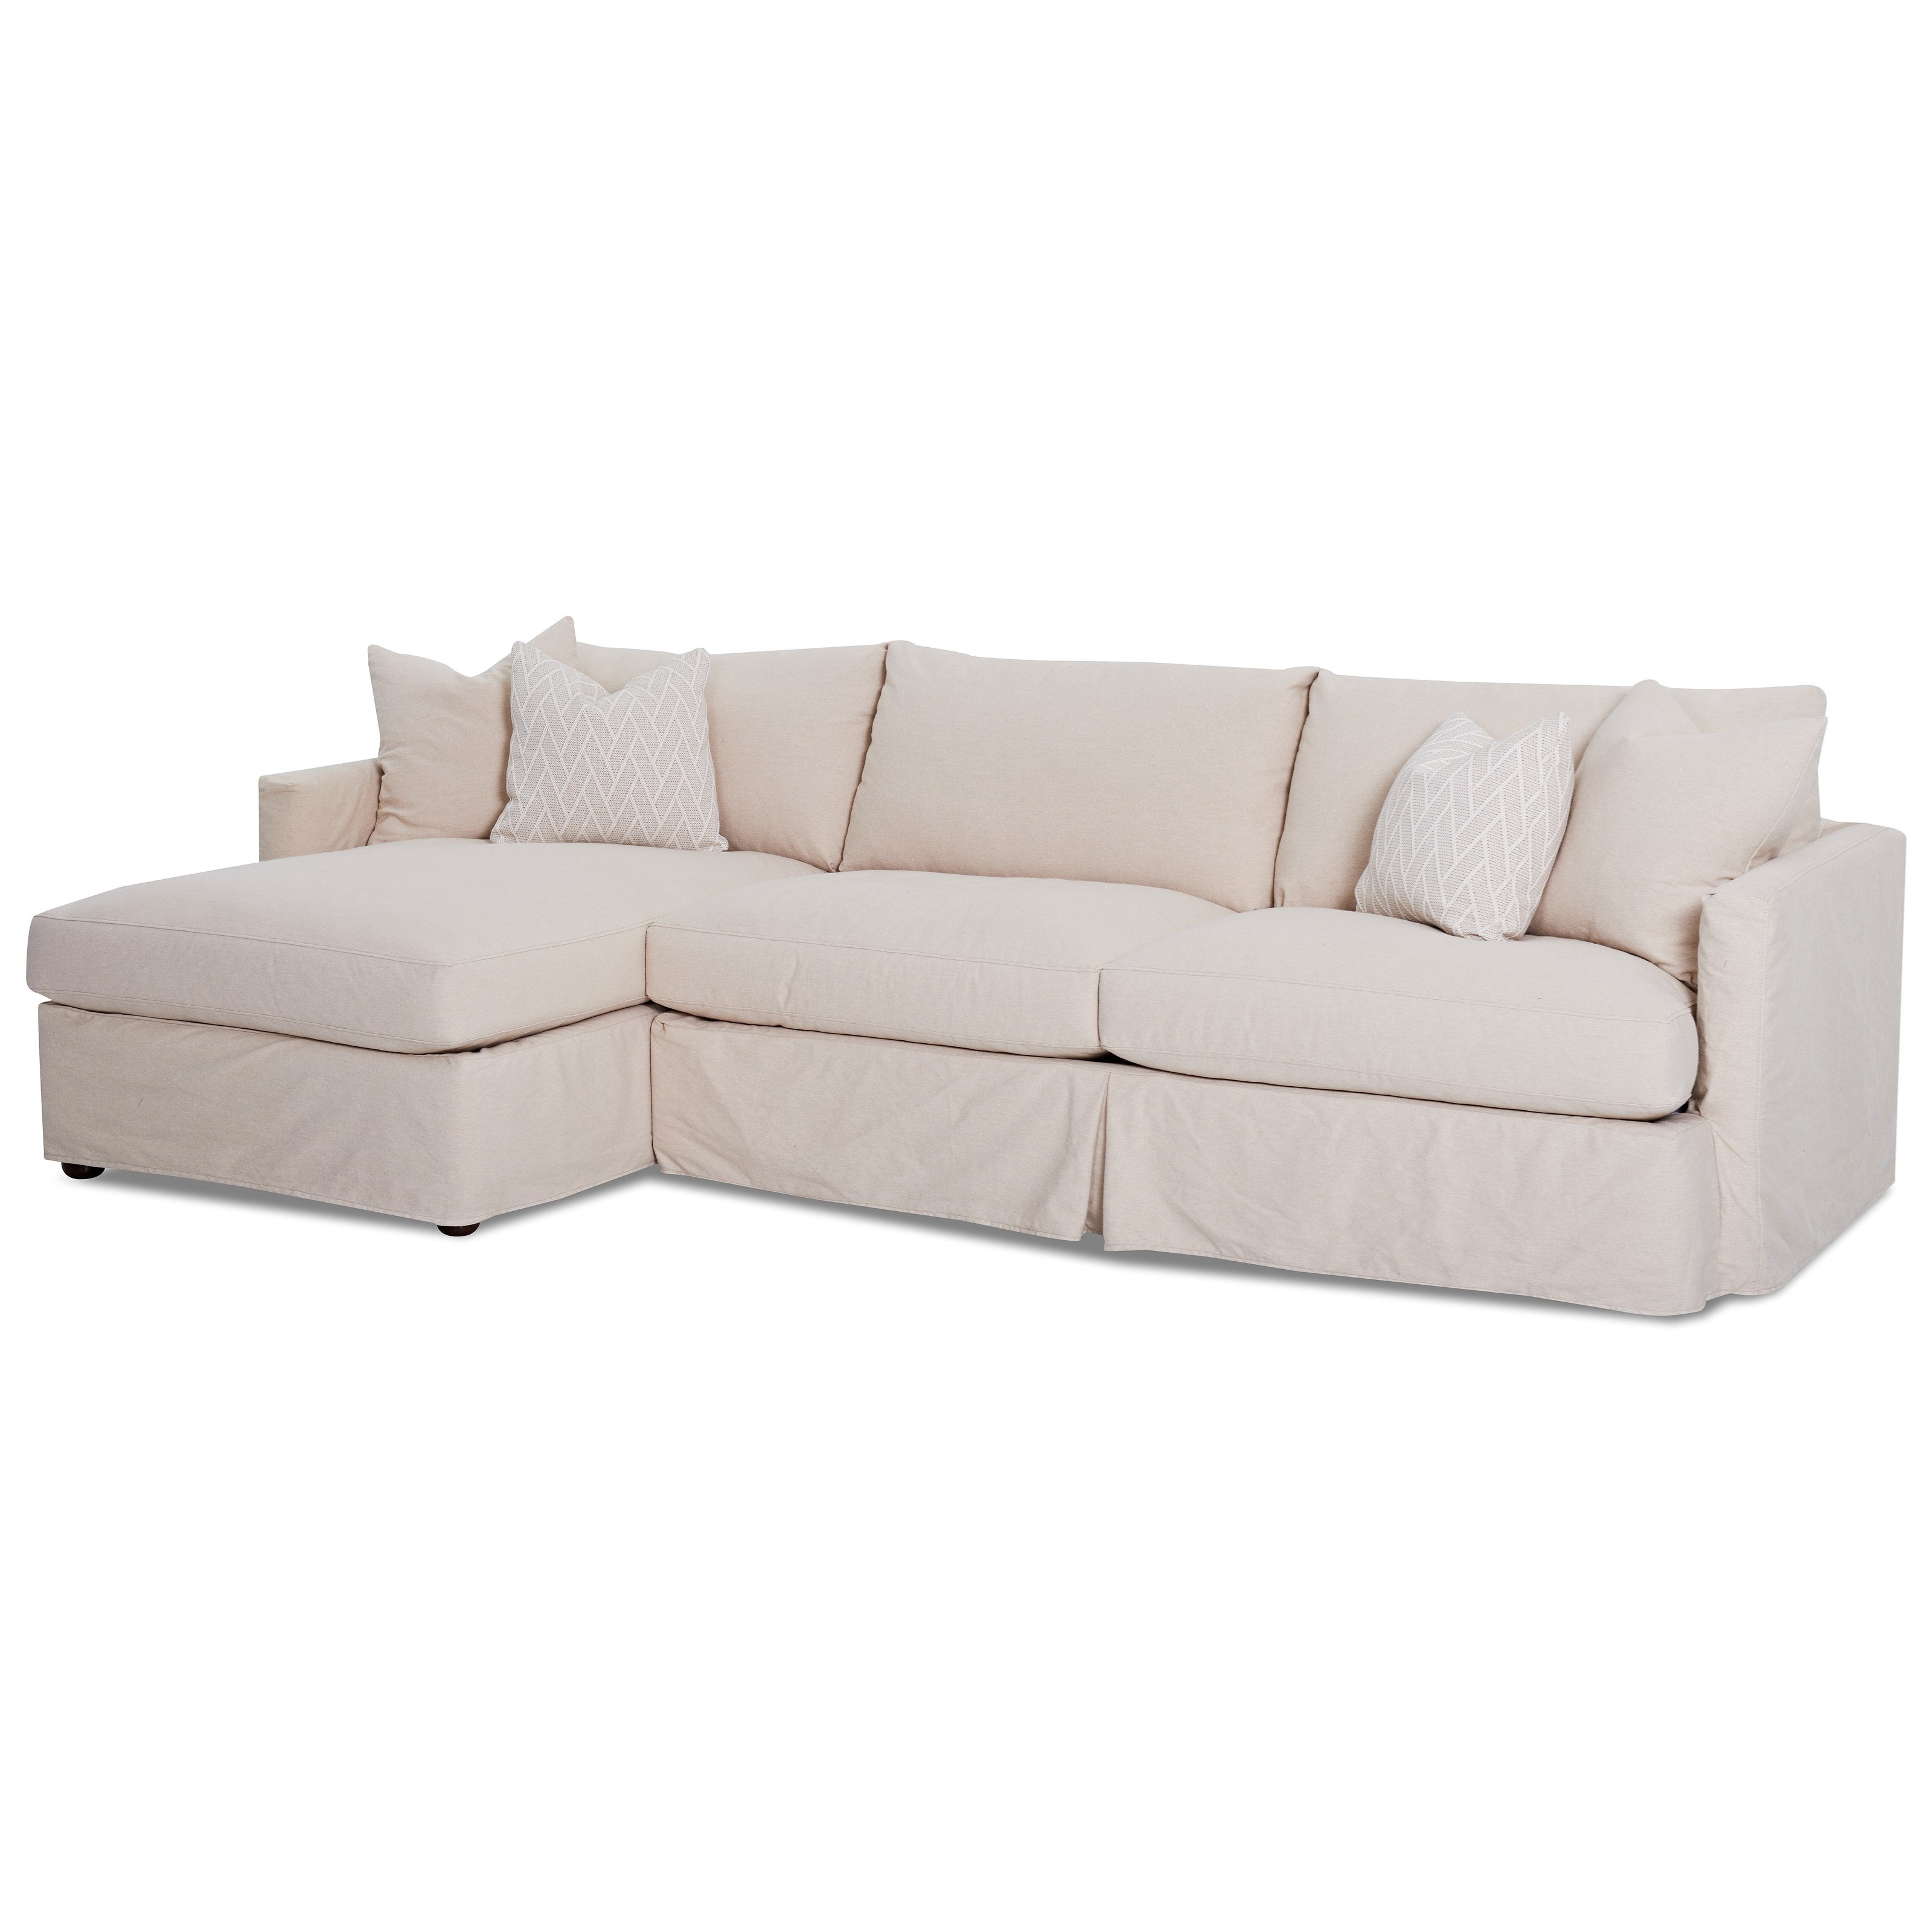 2 Pc Sectional Sofa with Slipcover and LAF Chaise